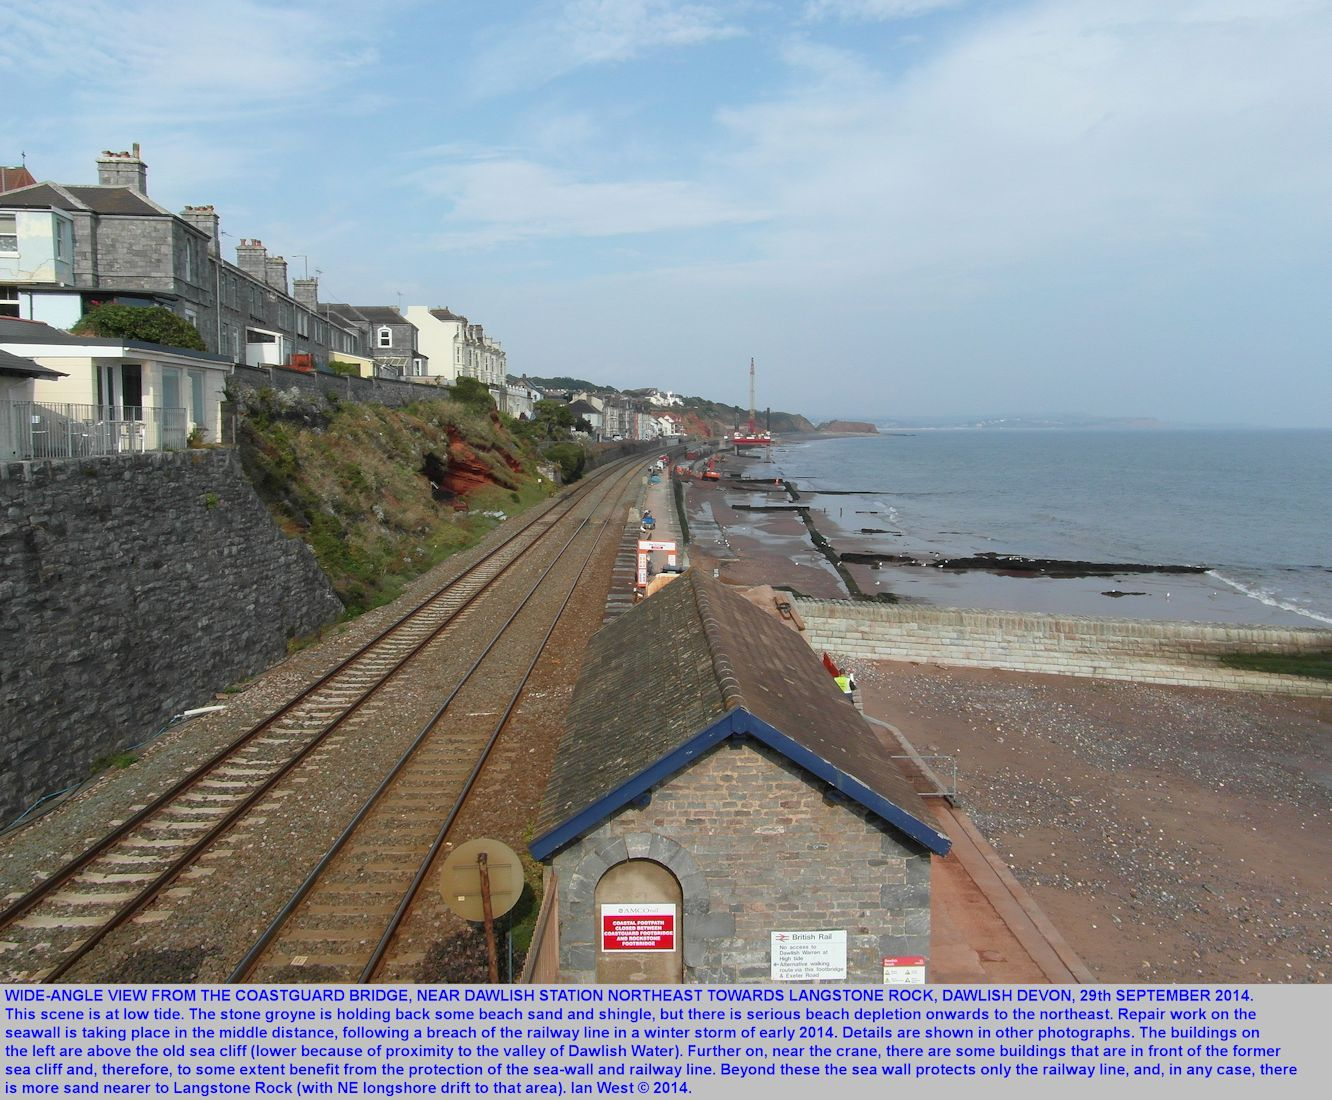 Dawlish, Devon, a wide-angle view from the Coastguard Bridge northeast towards Langstone Rock, showing the area of a breach in the sea wall and railway in February 2014